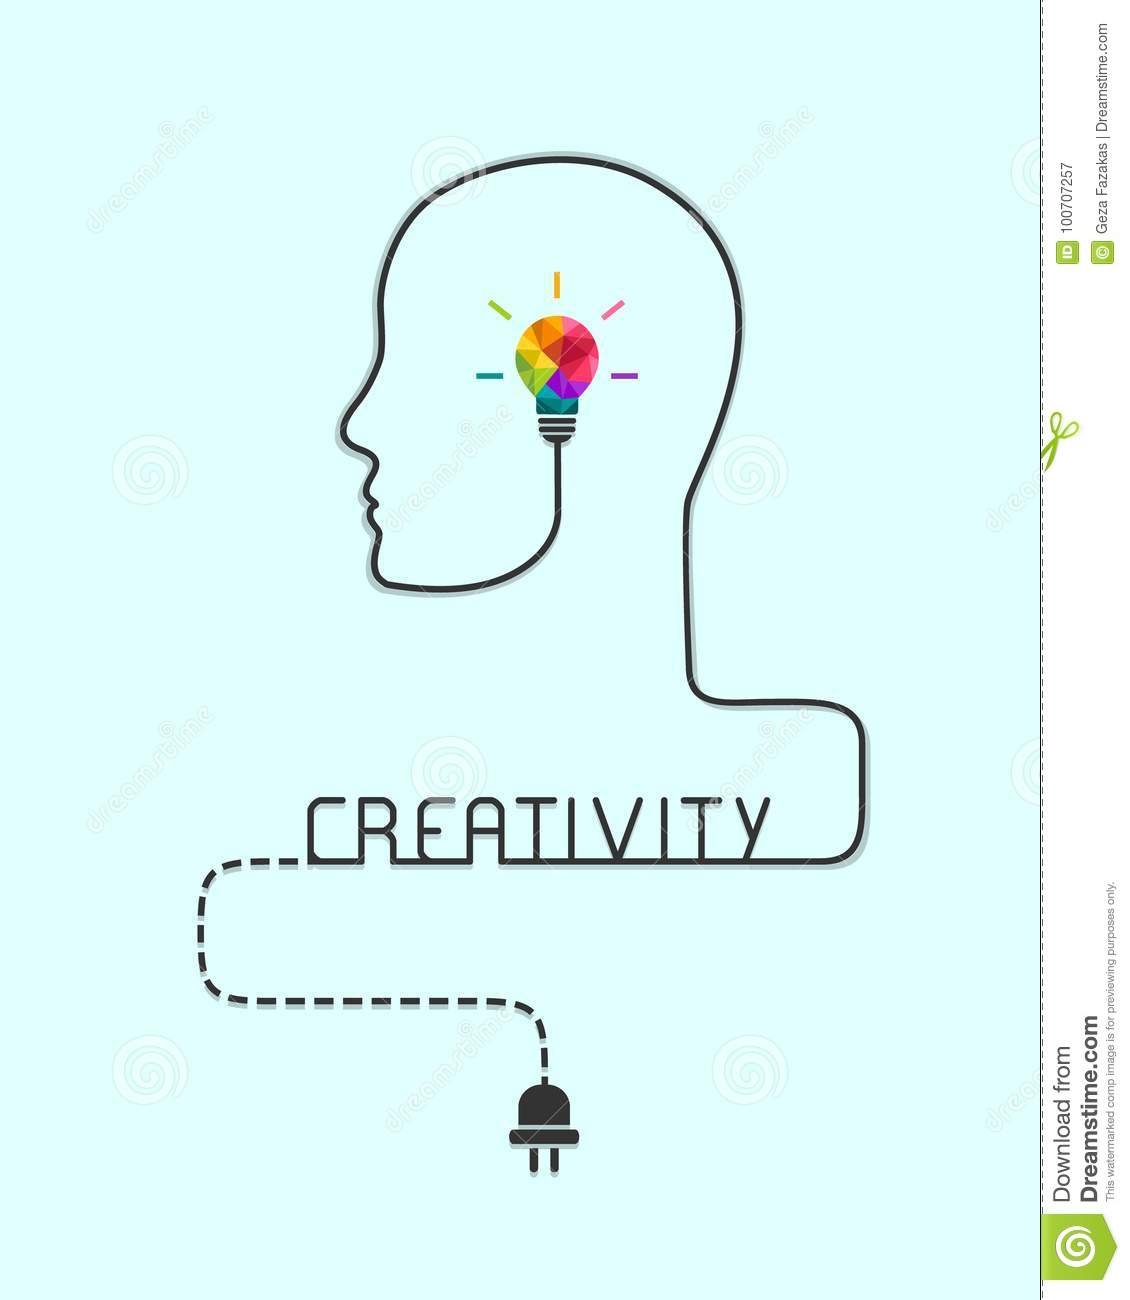 Creativity And Imagination Concept With Colorful Lightbulb Stock